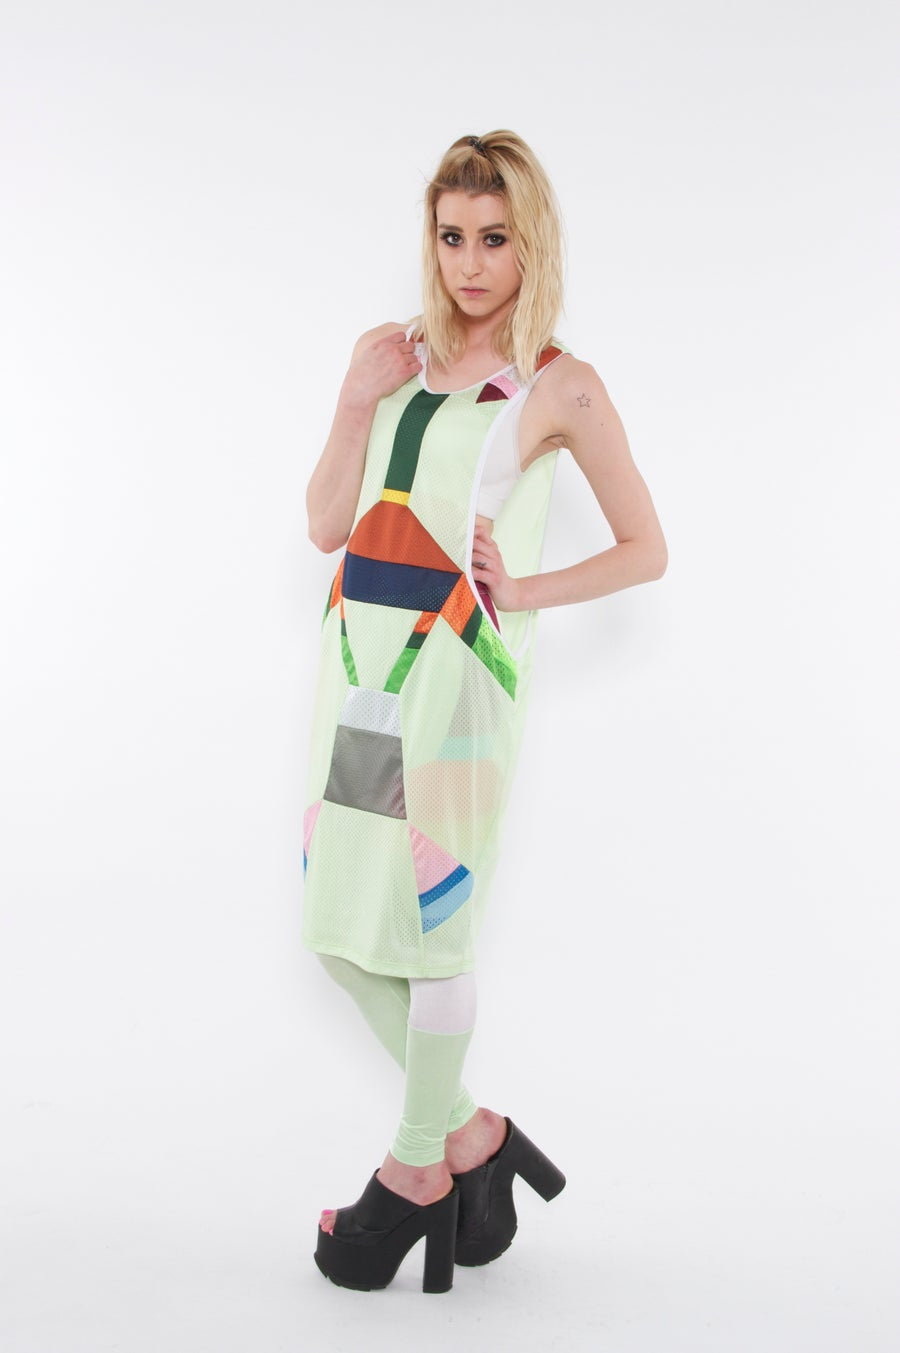 Image of Insulation Tunic - FOAM Collection